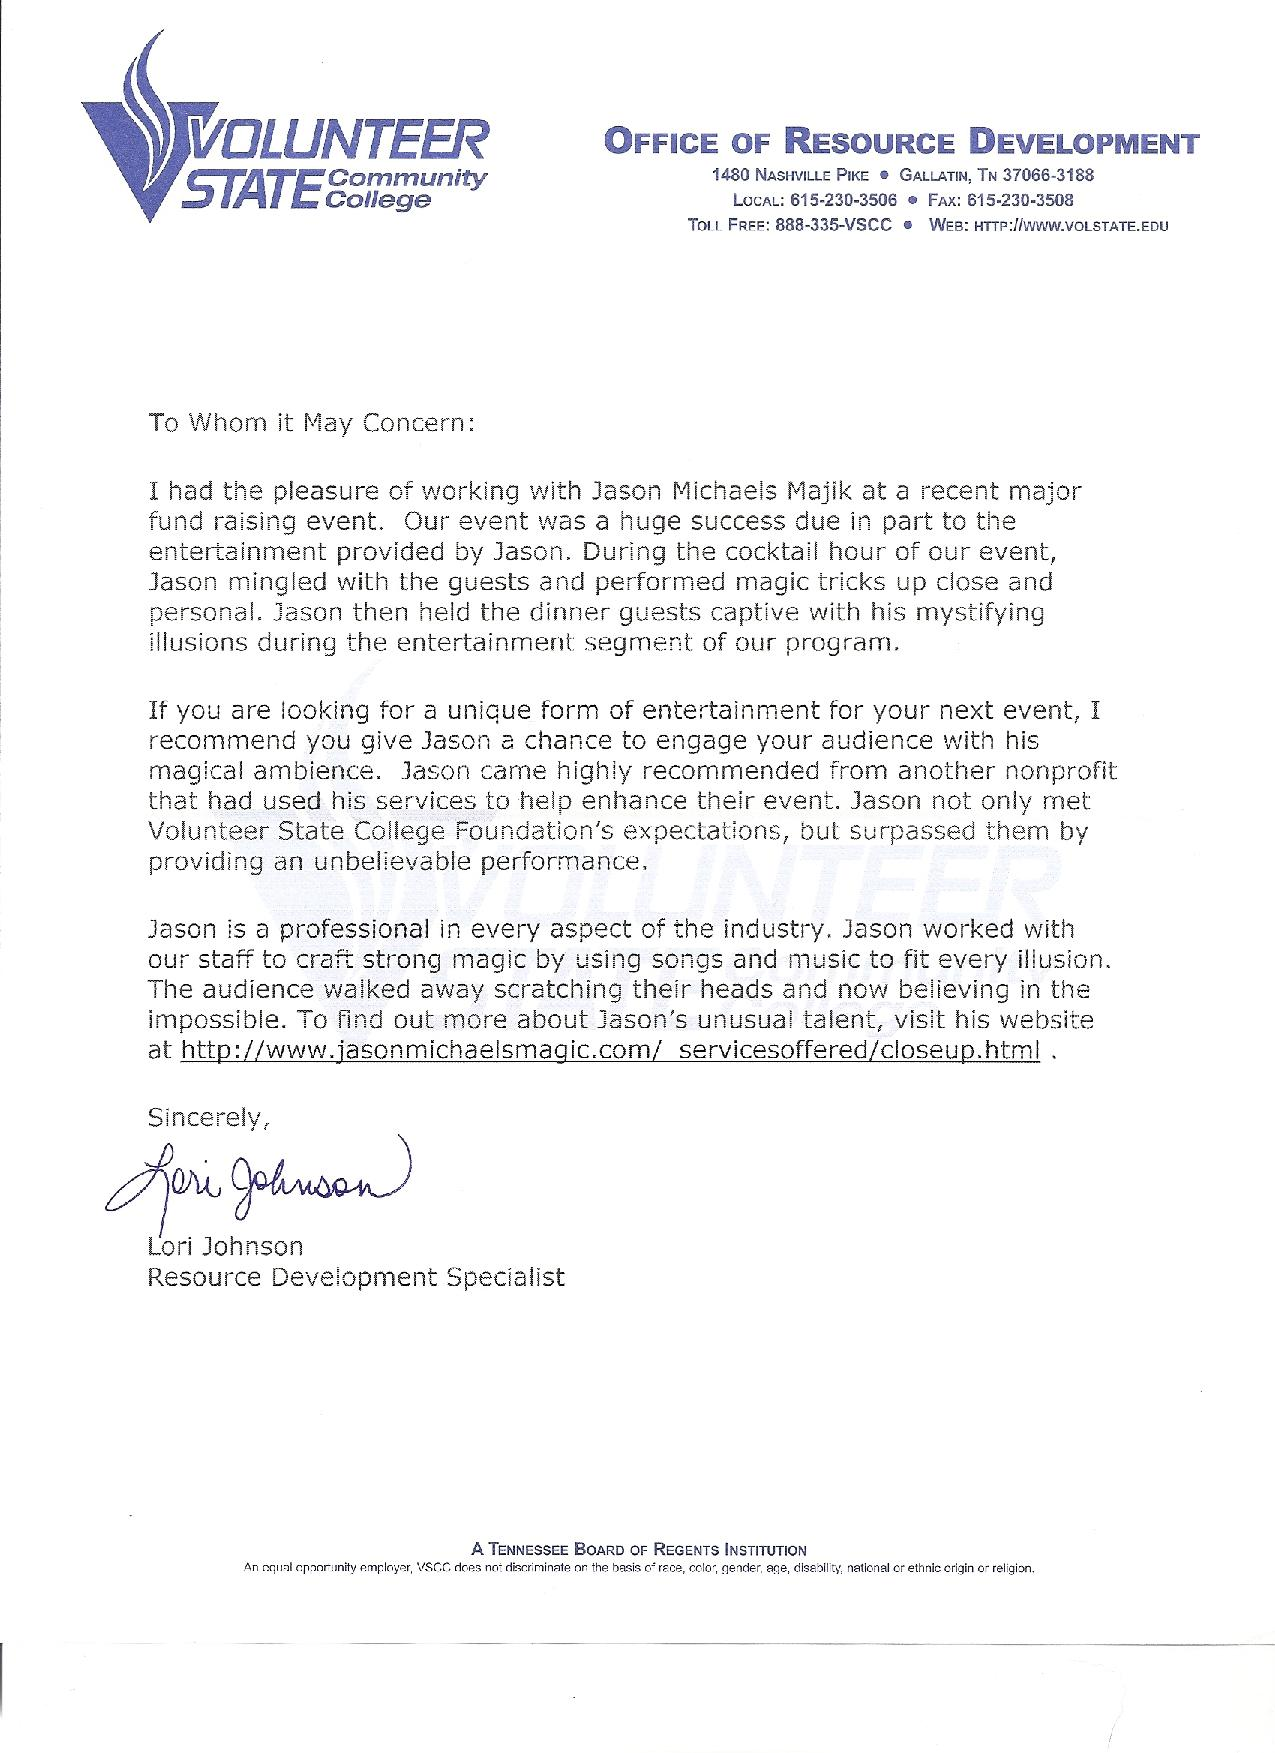 Vol State Foundation Letter of Recommendation-page-001.jpg